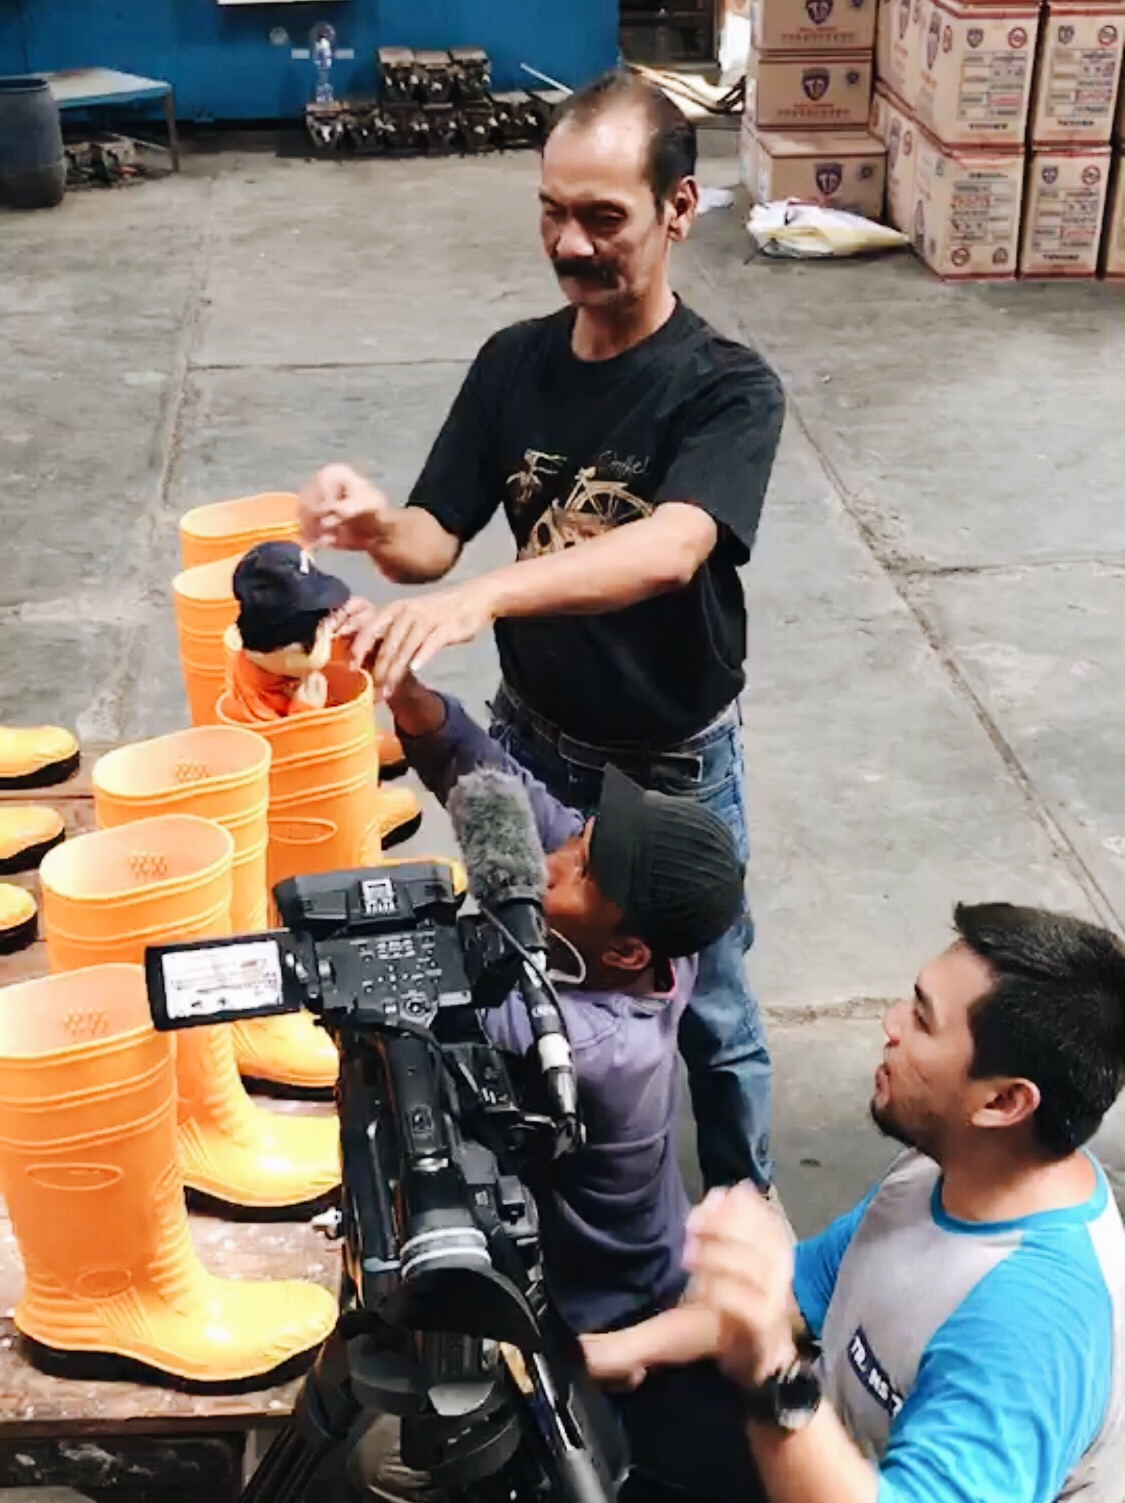 Shooting of Unyil at Toyobo Boots